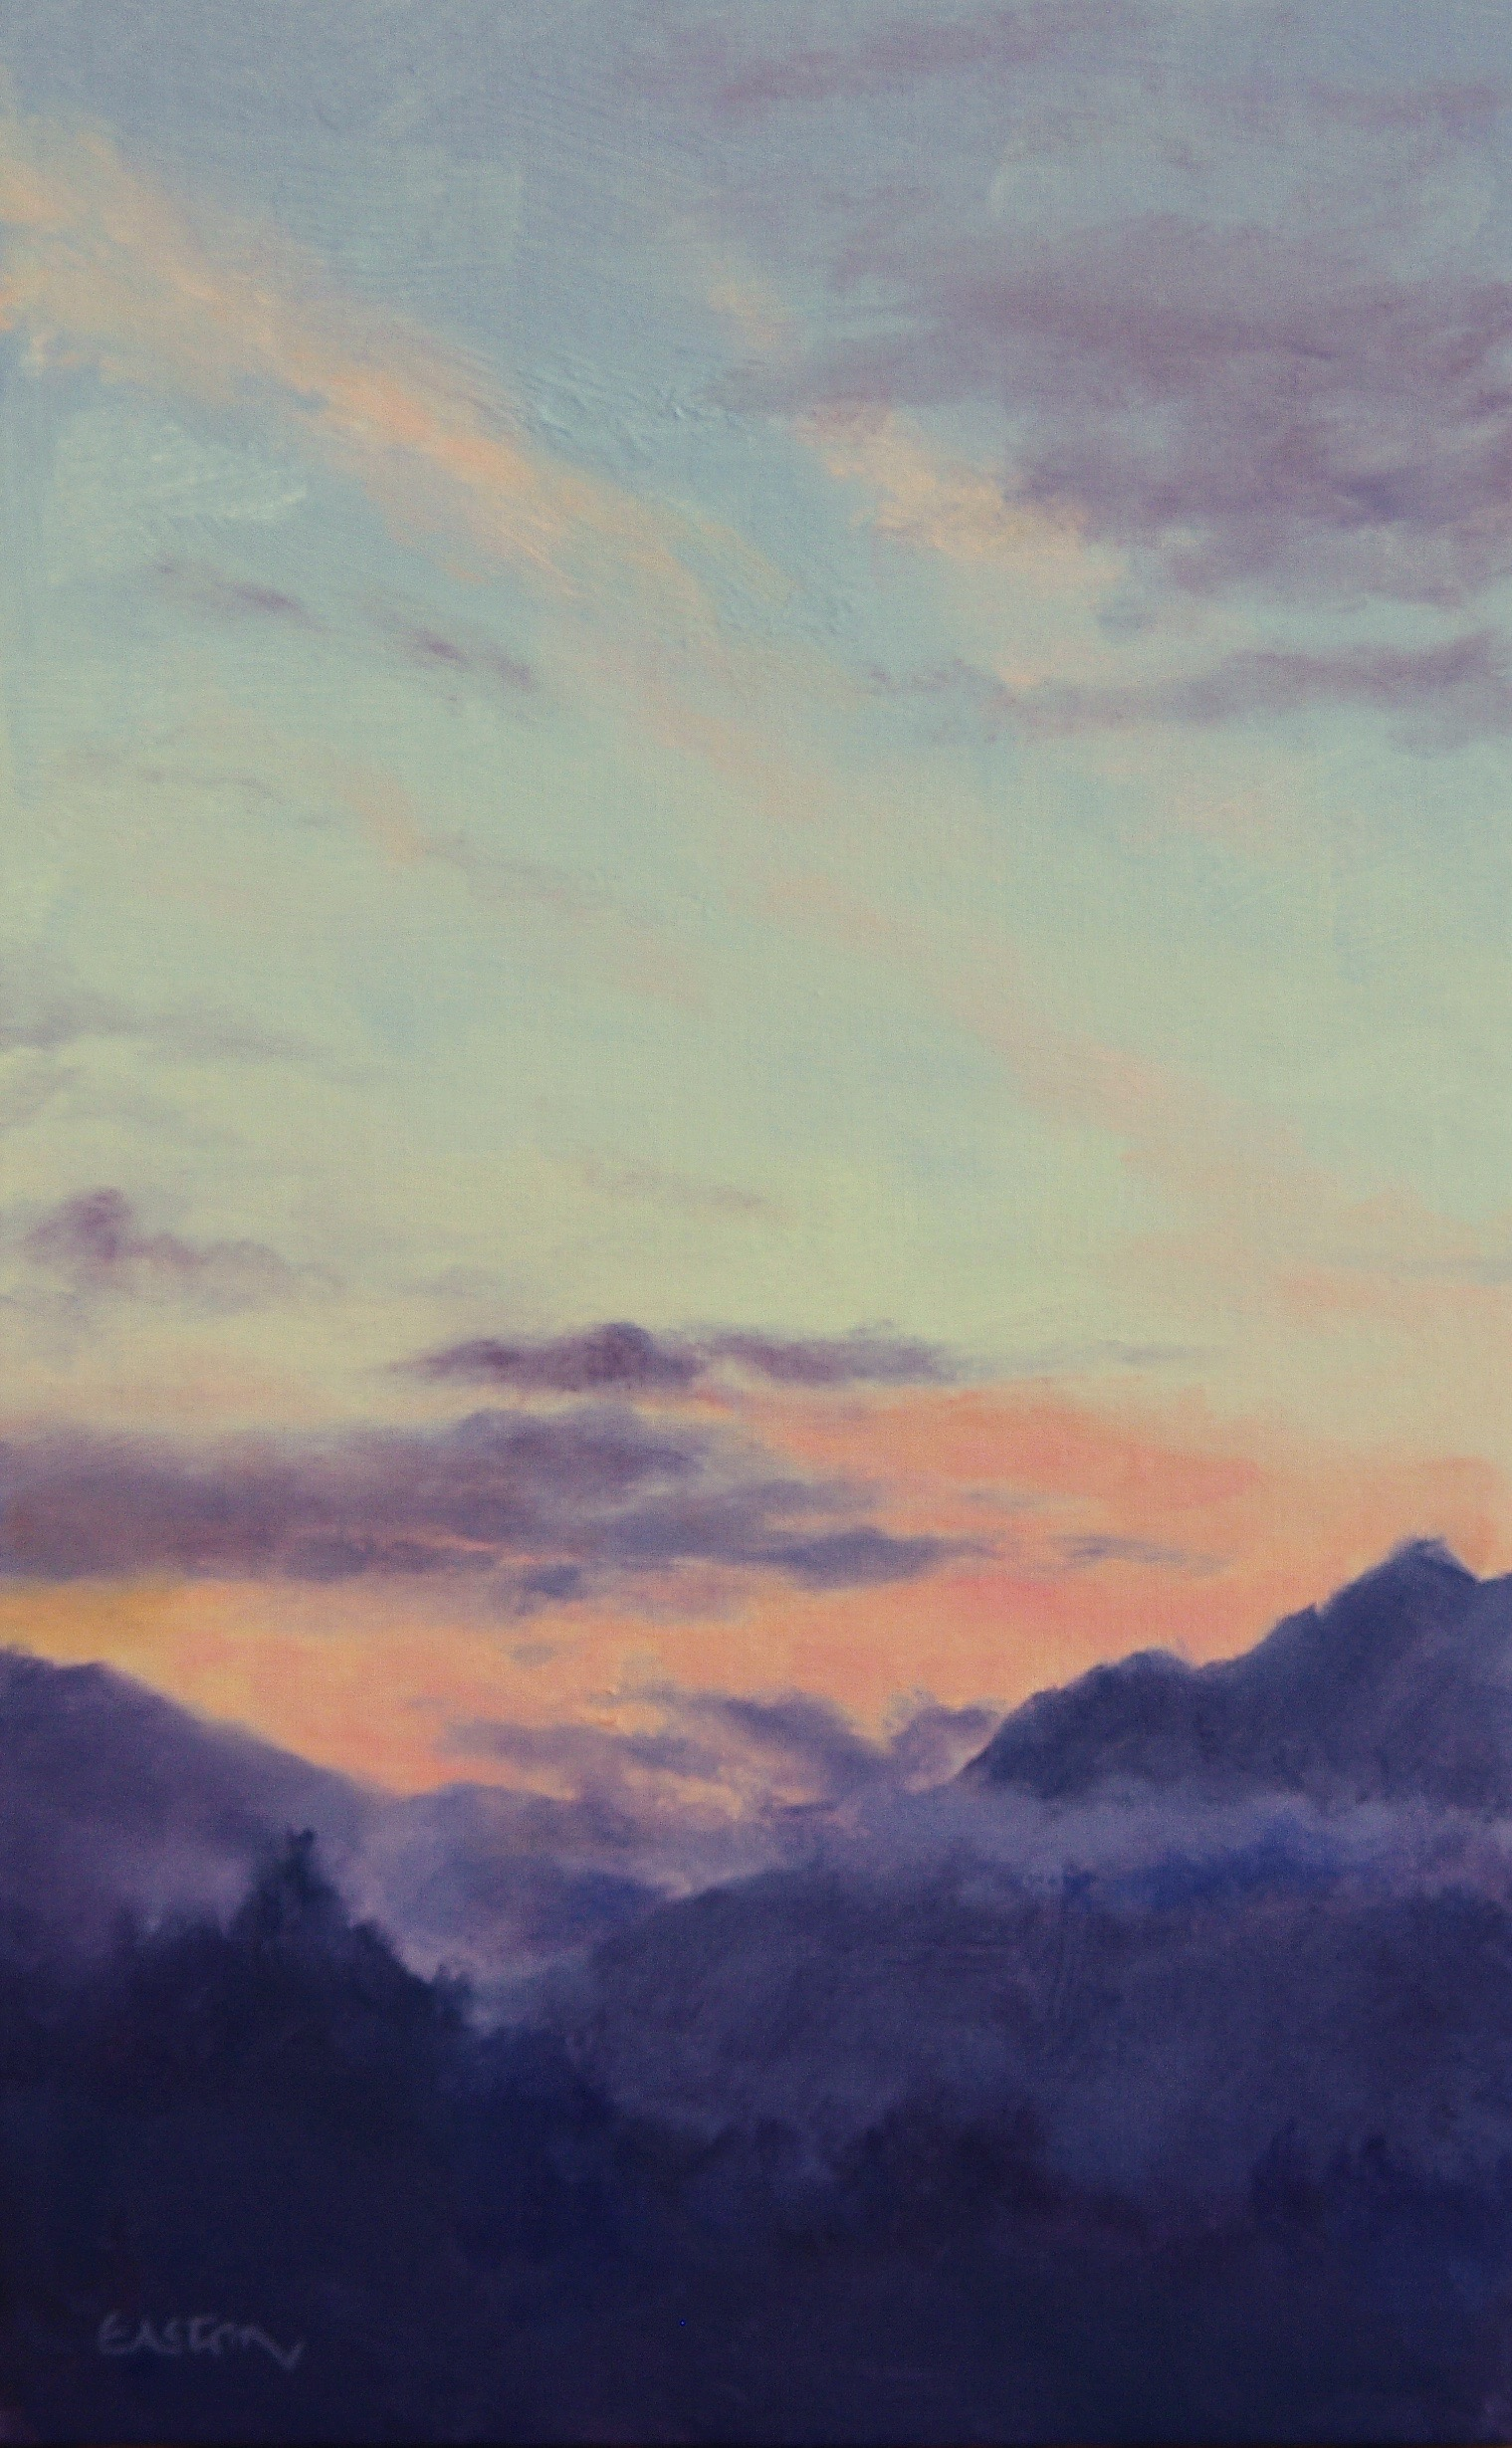 sunrise, mountains, clouds, queenstown